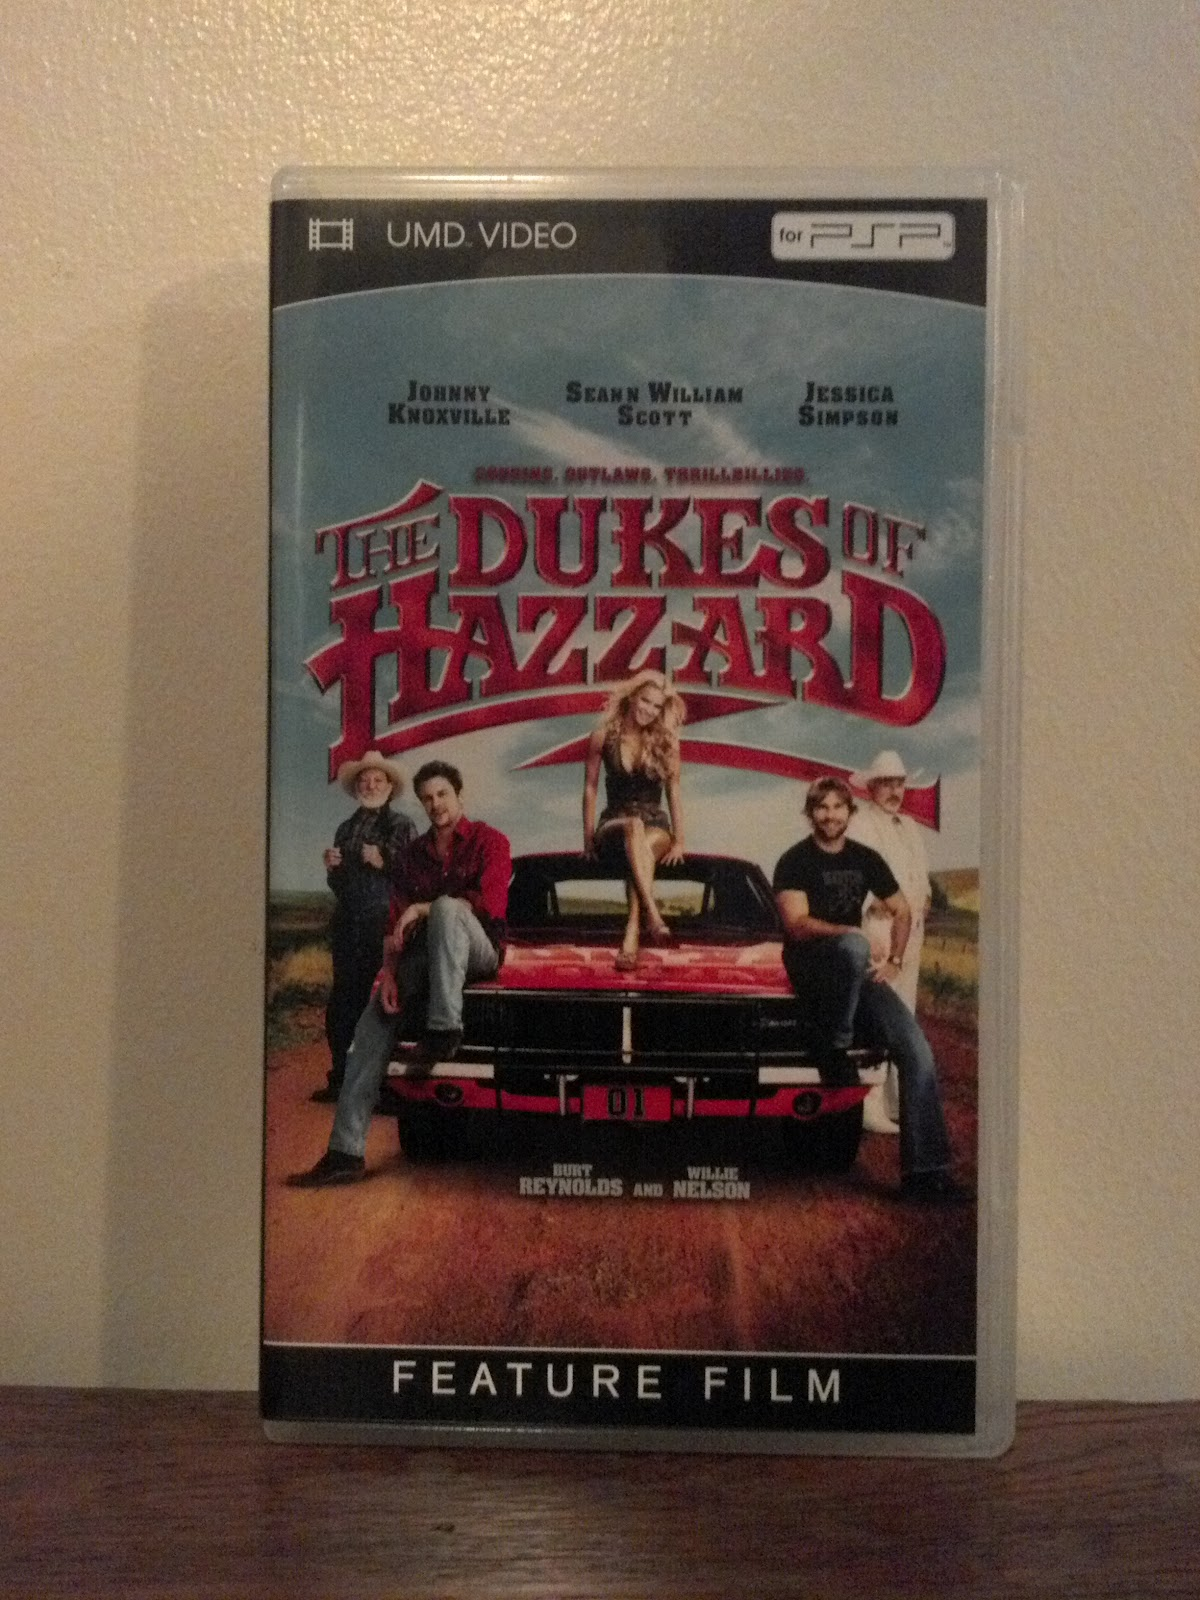 The Dukes of Hazzard 2005  Rotten Tomatoes